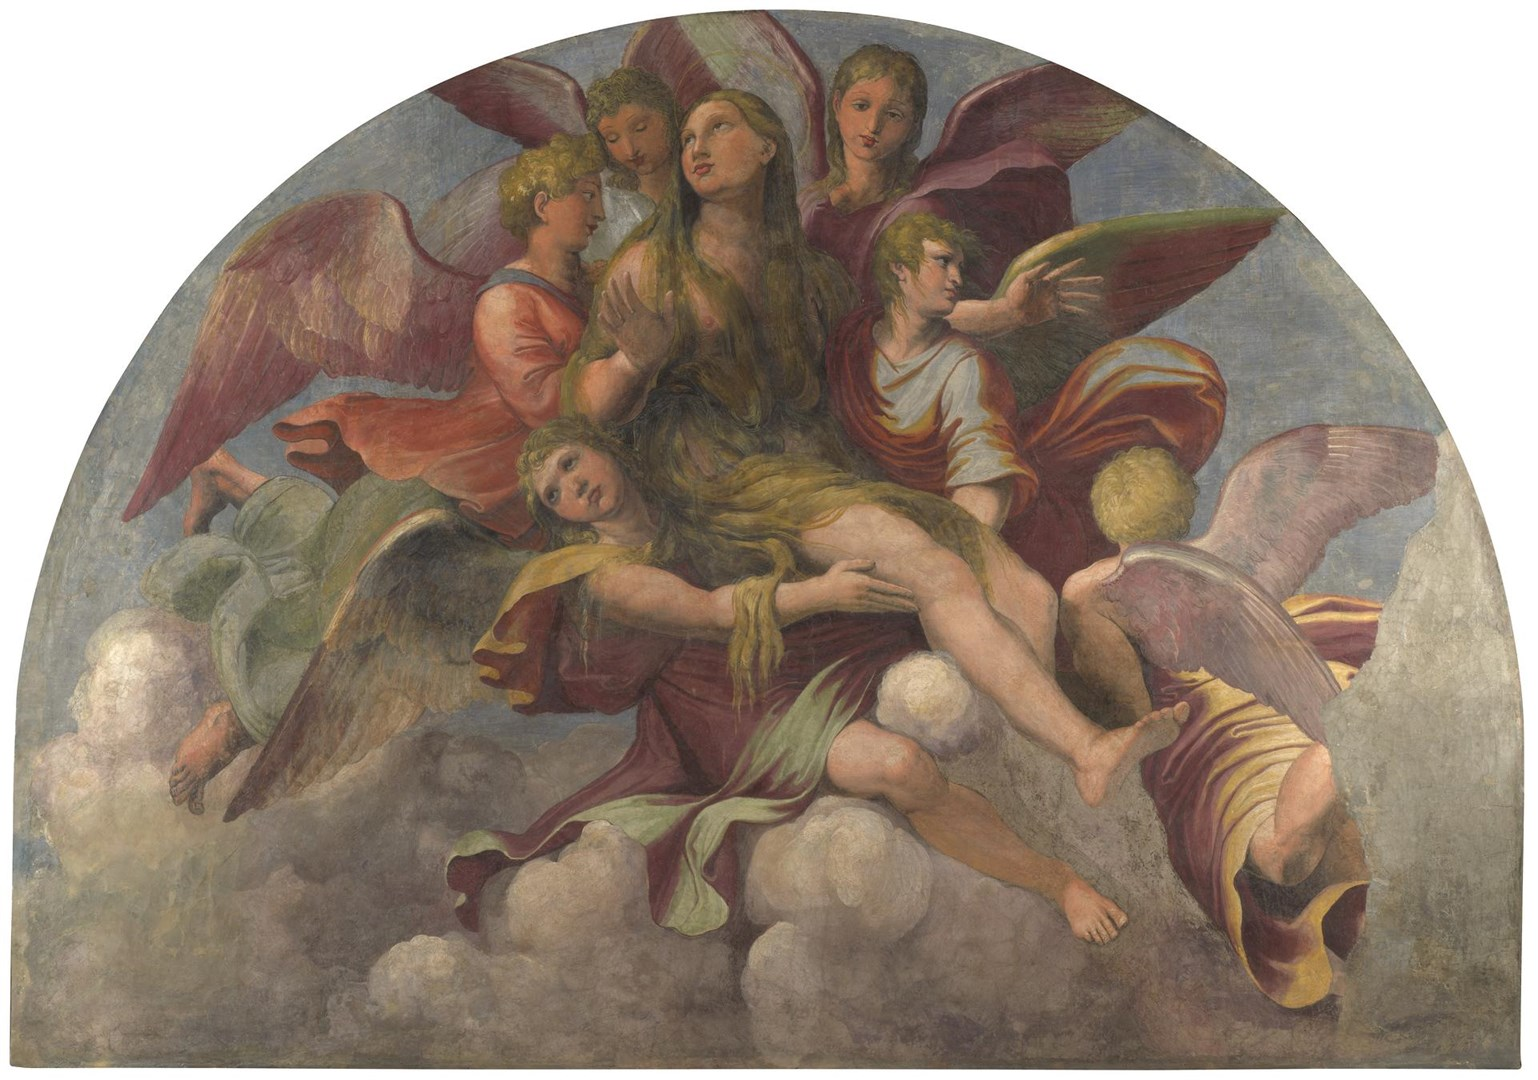 Saint Mary Magdalene borne by Angels by Giulio Romano and Gianfrancesco Penni